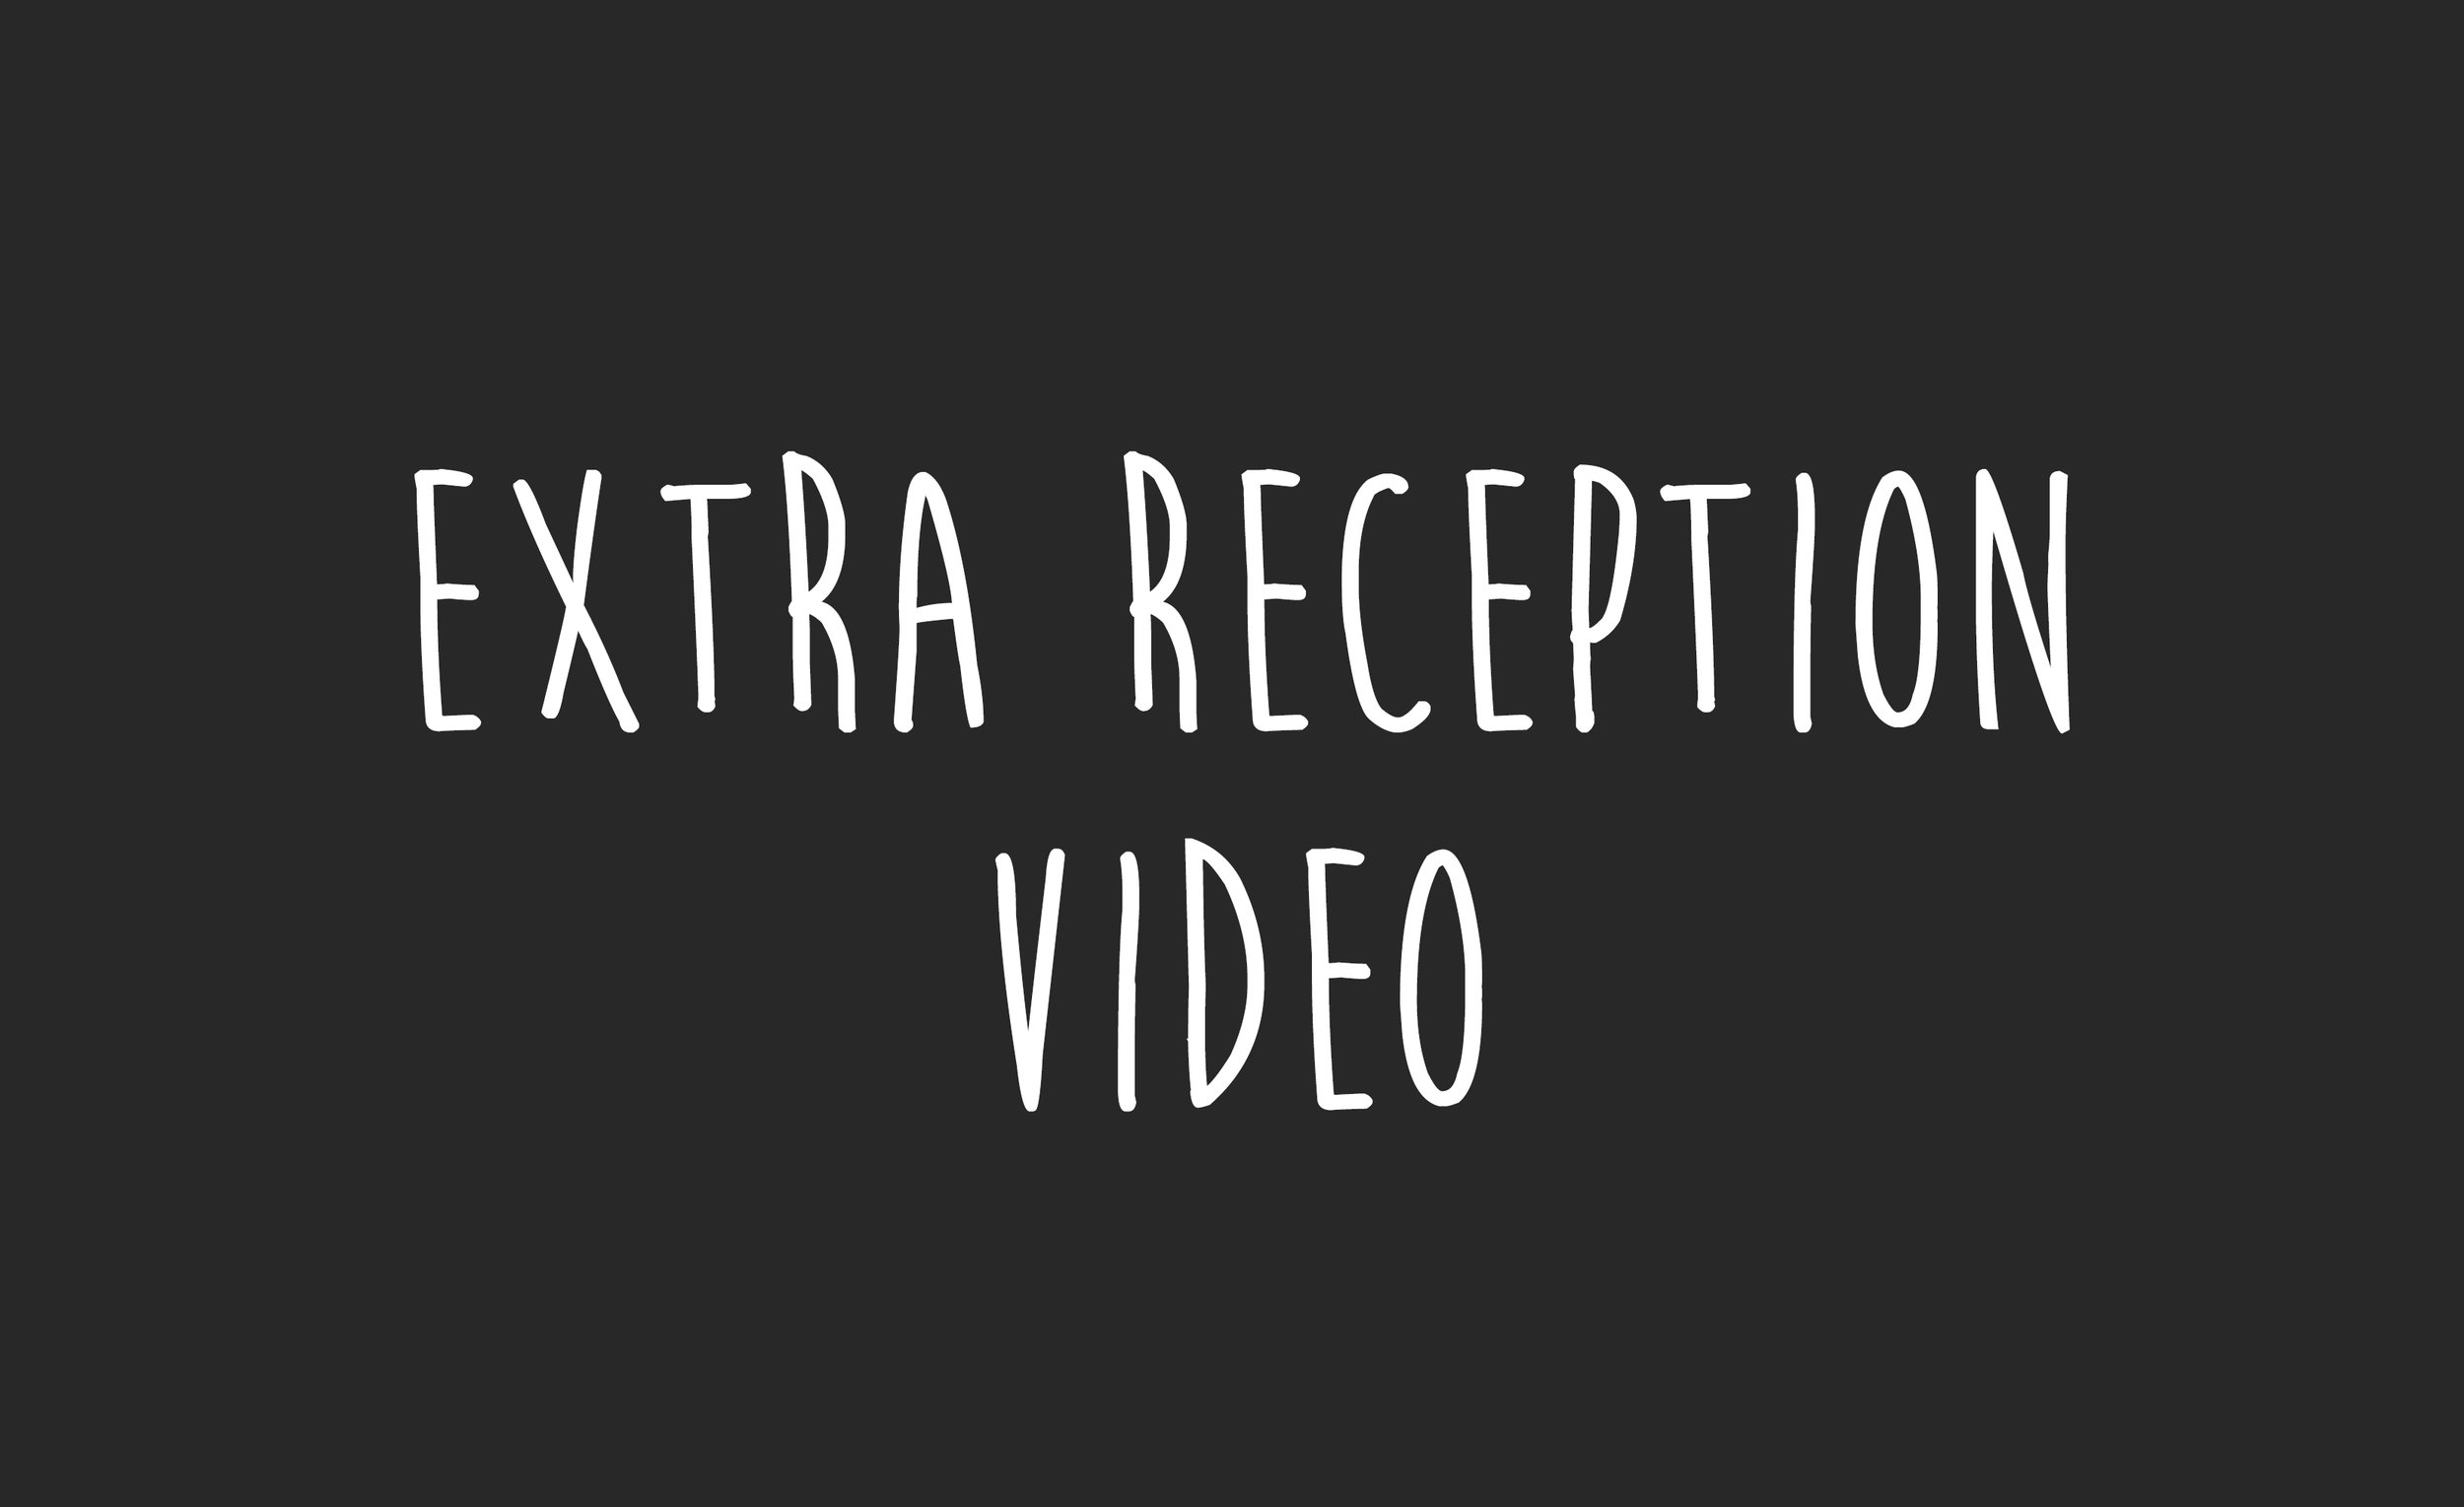 $400 - After every wedding, there's a lot of really great footage that doesn't quite make the cut to appear in your highlight film. This is a chance to see that extra, unused reception footage in its own short video, edited to more music.